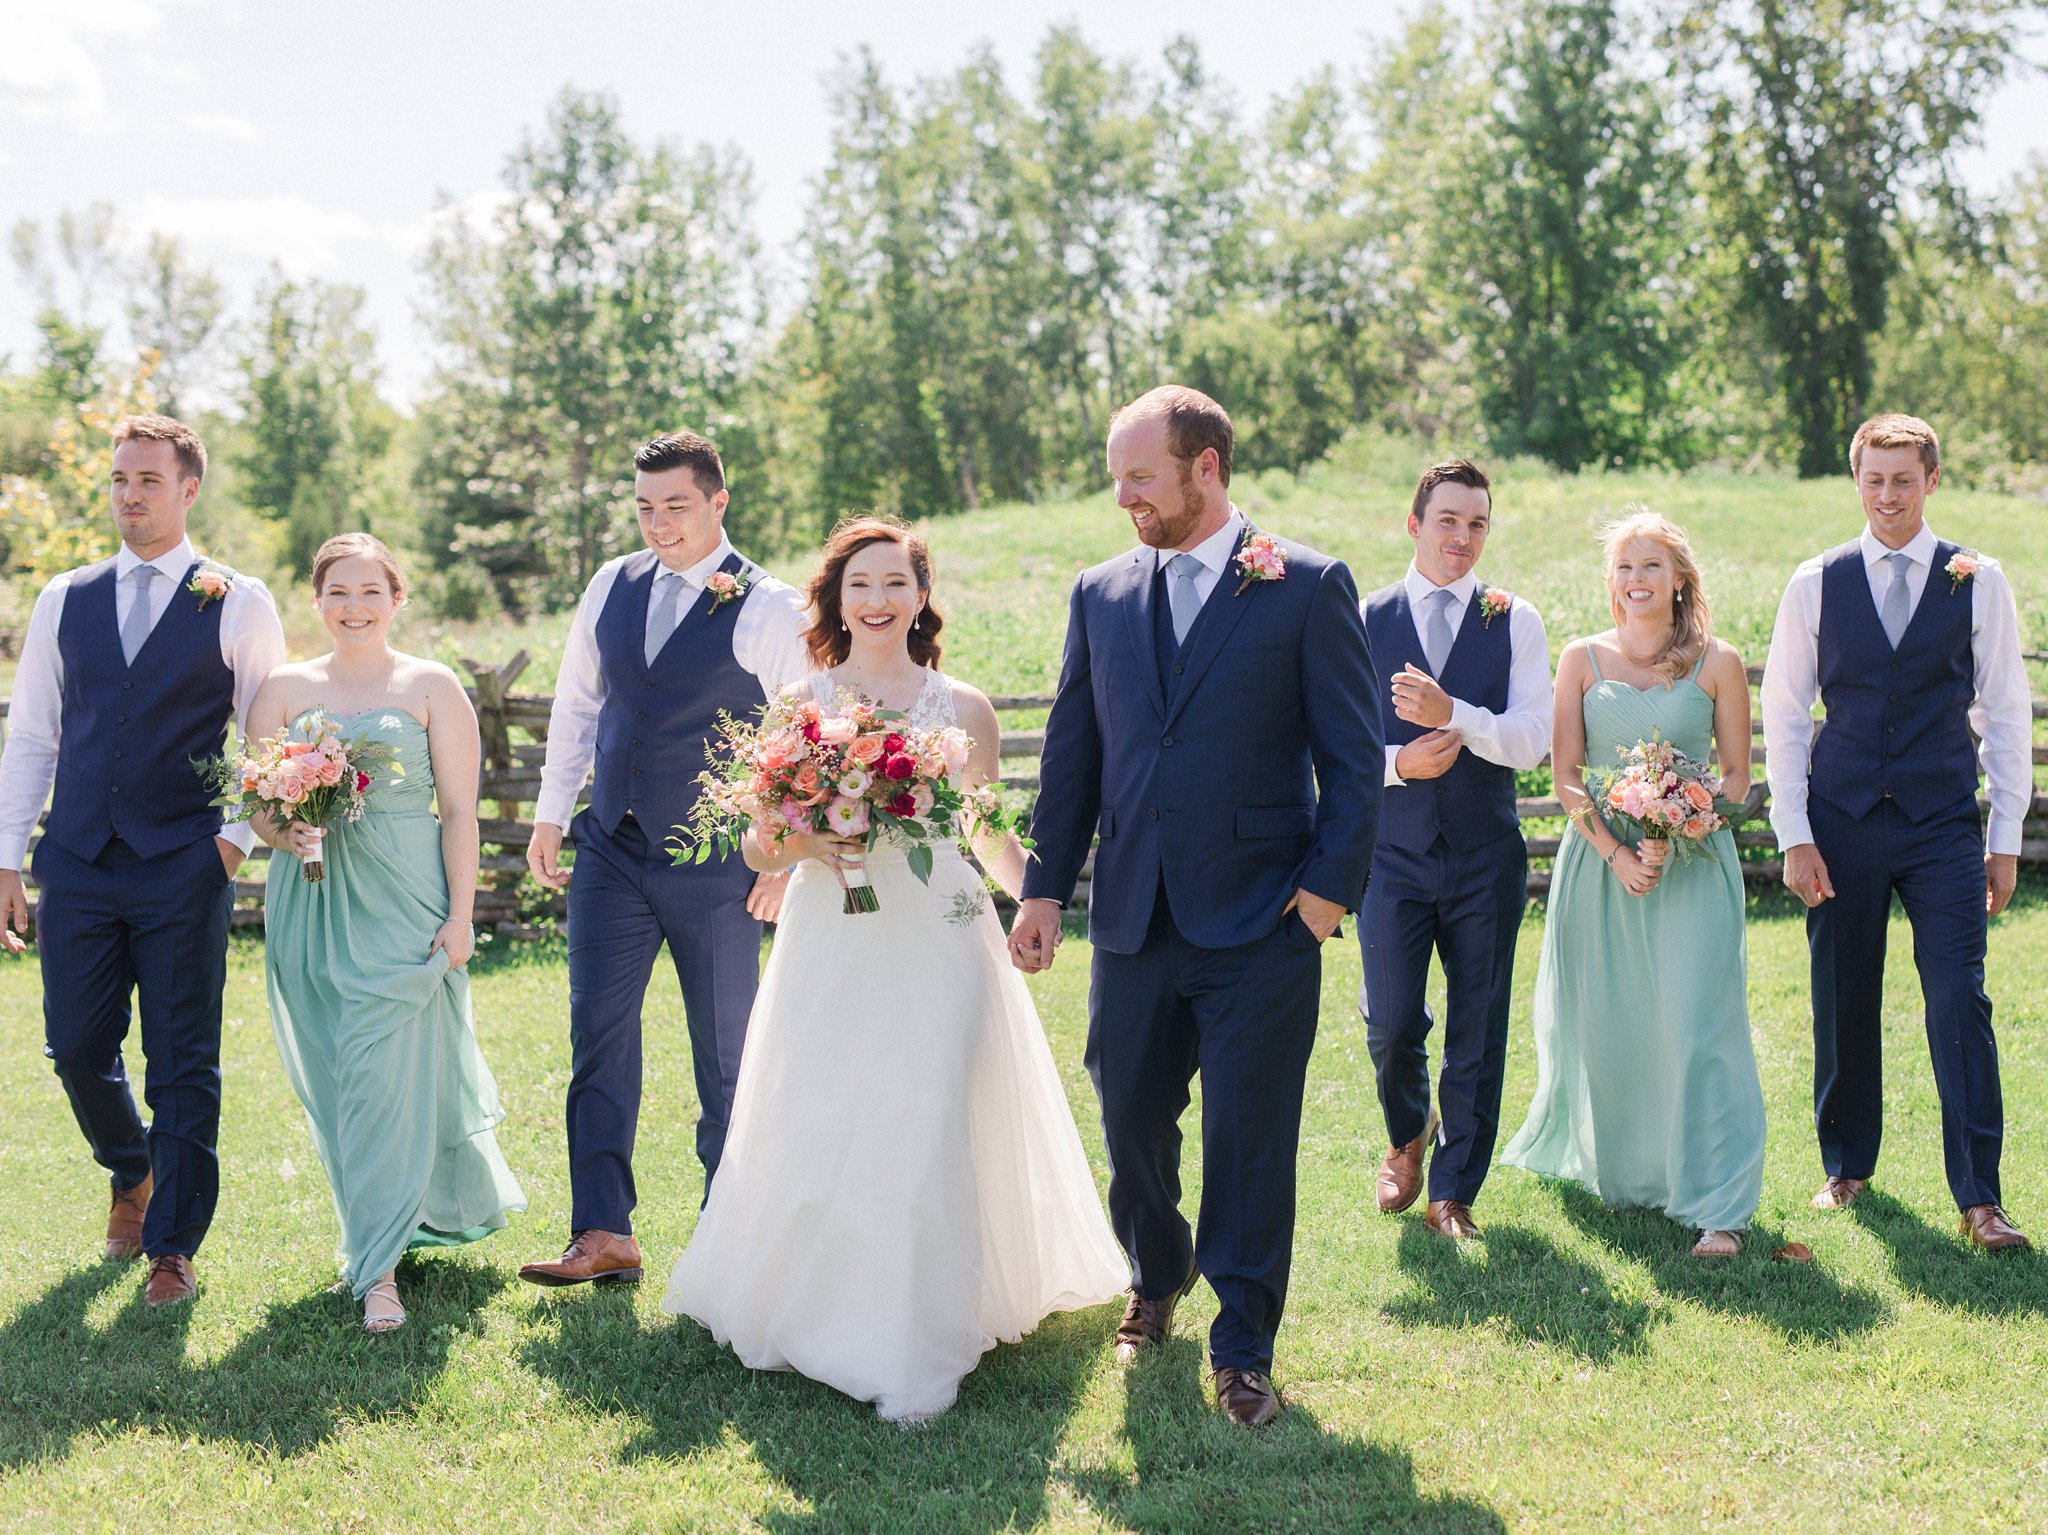 Bridal party in field Dog-friendly wedding venue Ottawa Stonefields Amy Pinder Photography